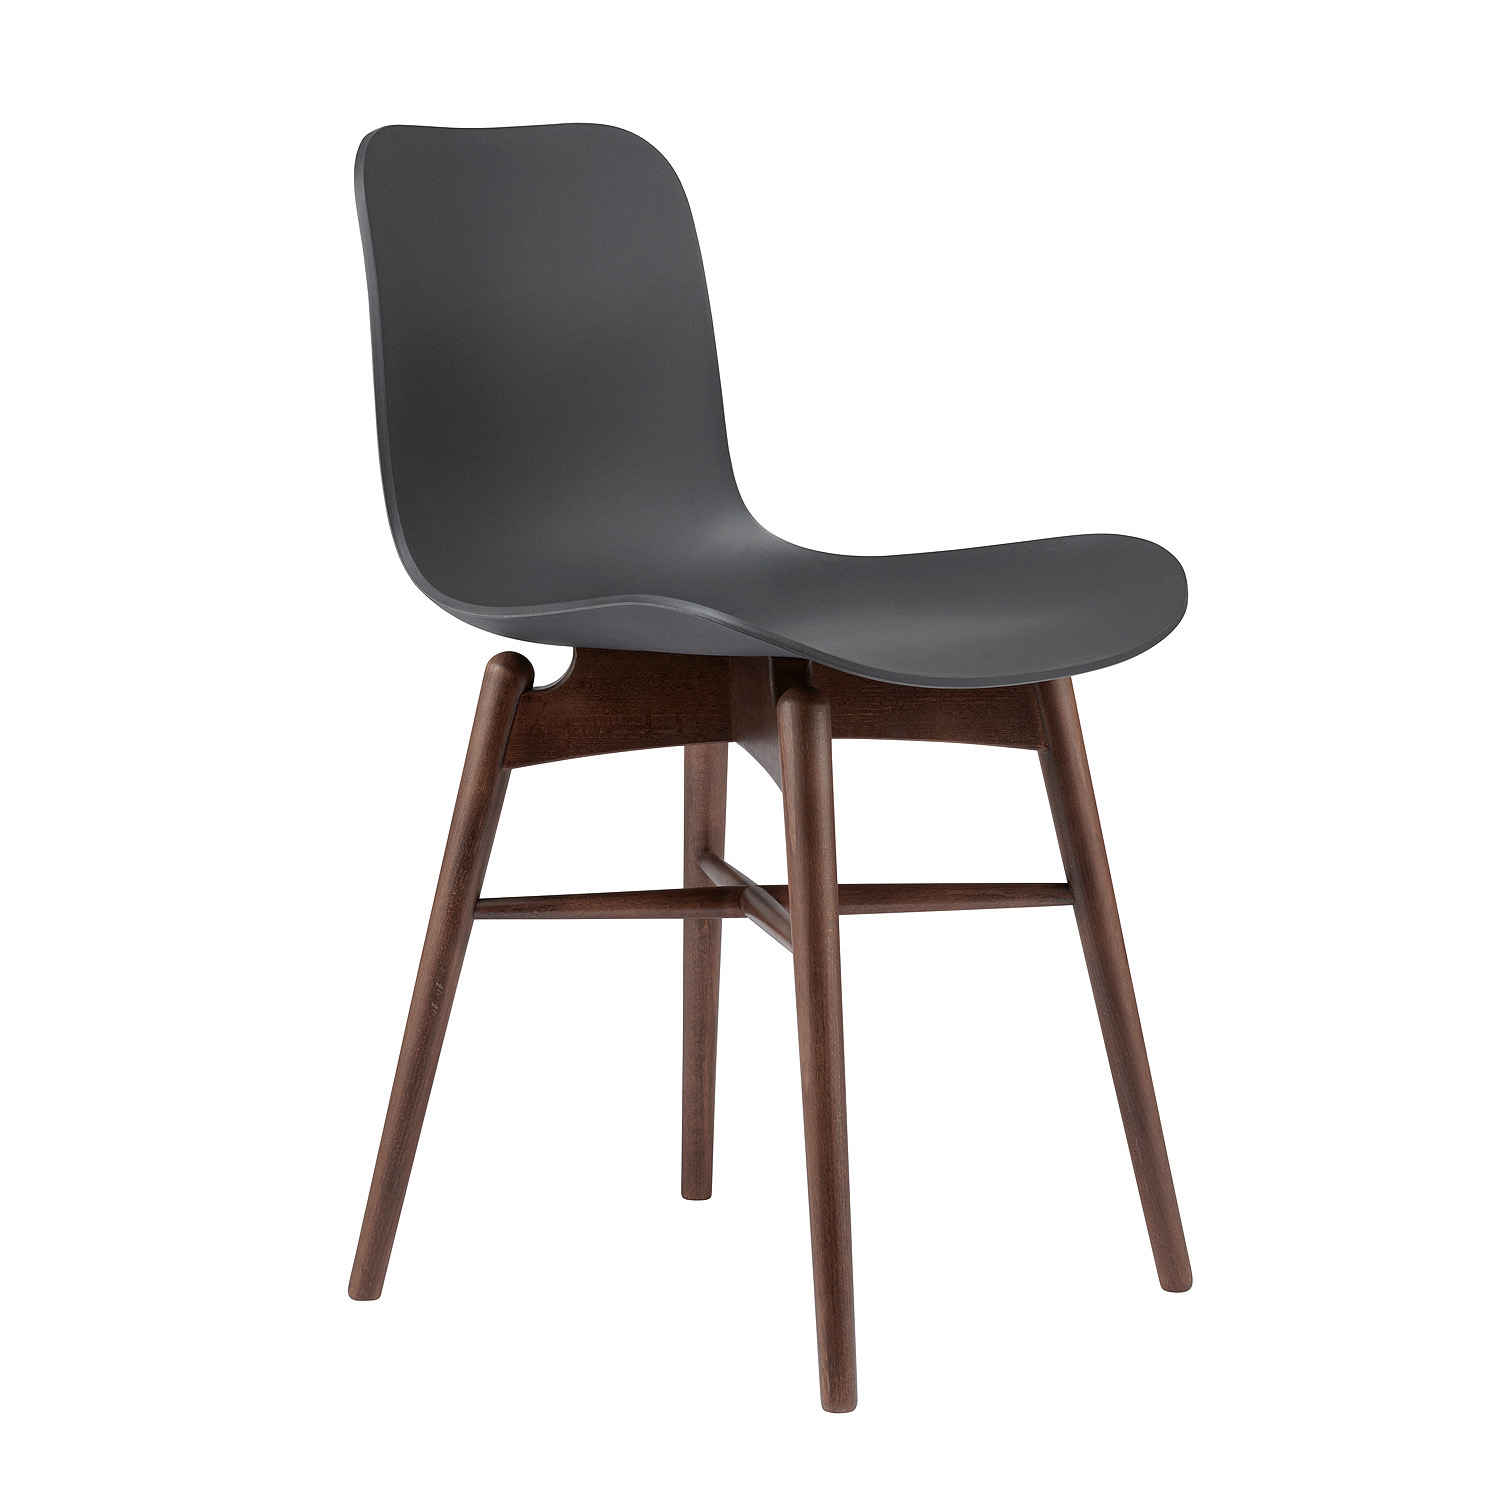 LANGUE_CHAIR_DARK_STAINED05_lowres.jpg